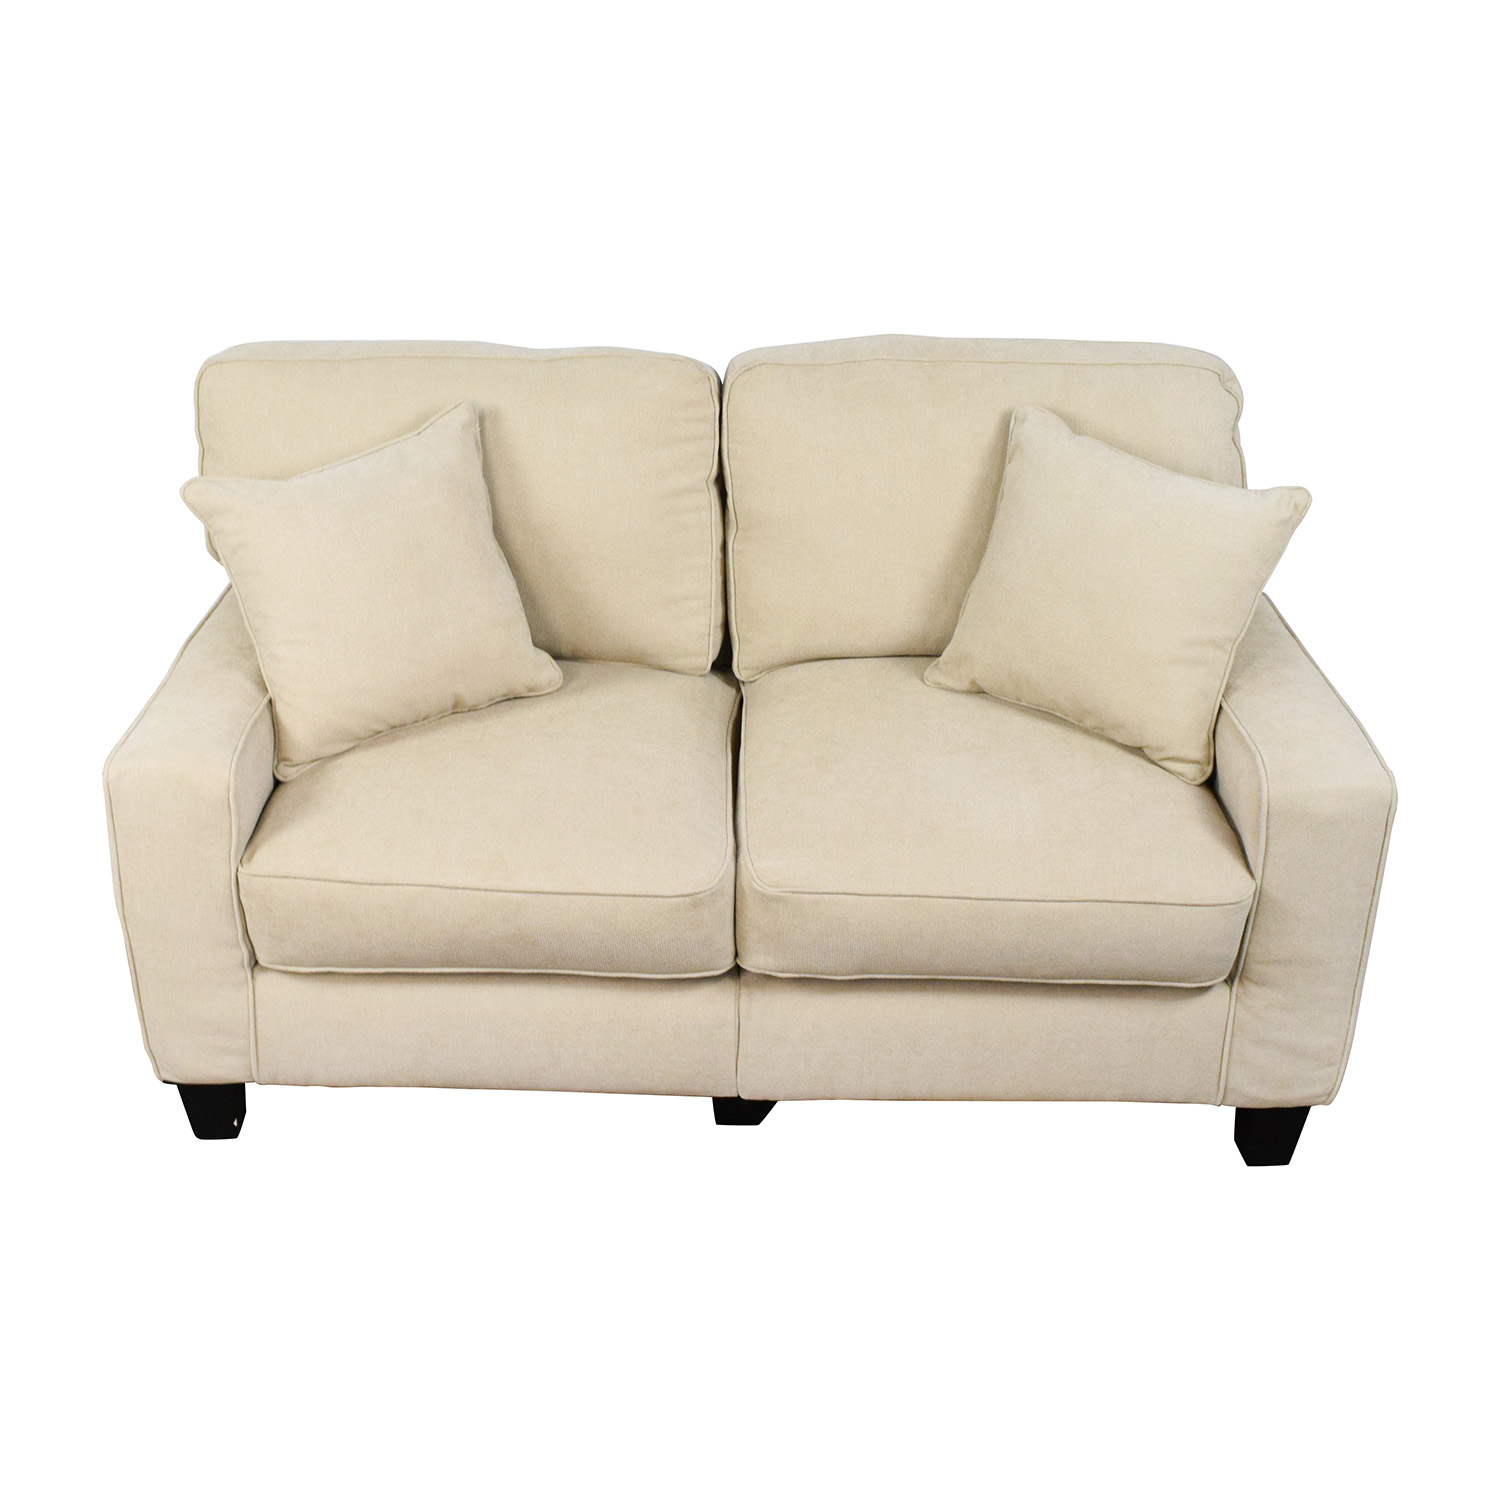 spaces cart loveseat added pdp qty leather your been has tan successfully living to candace